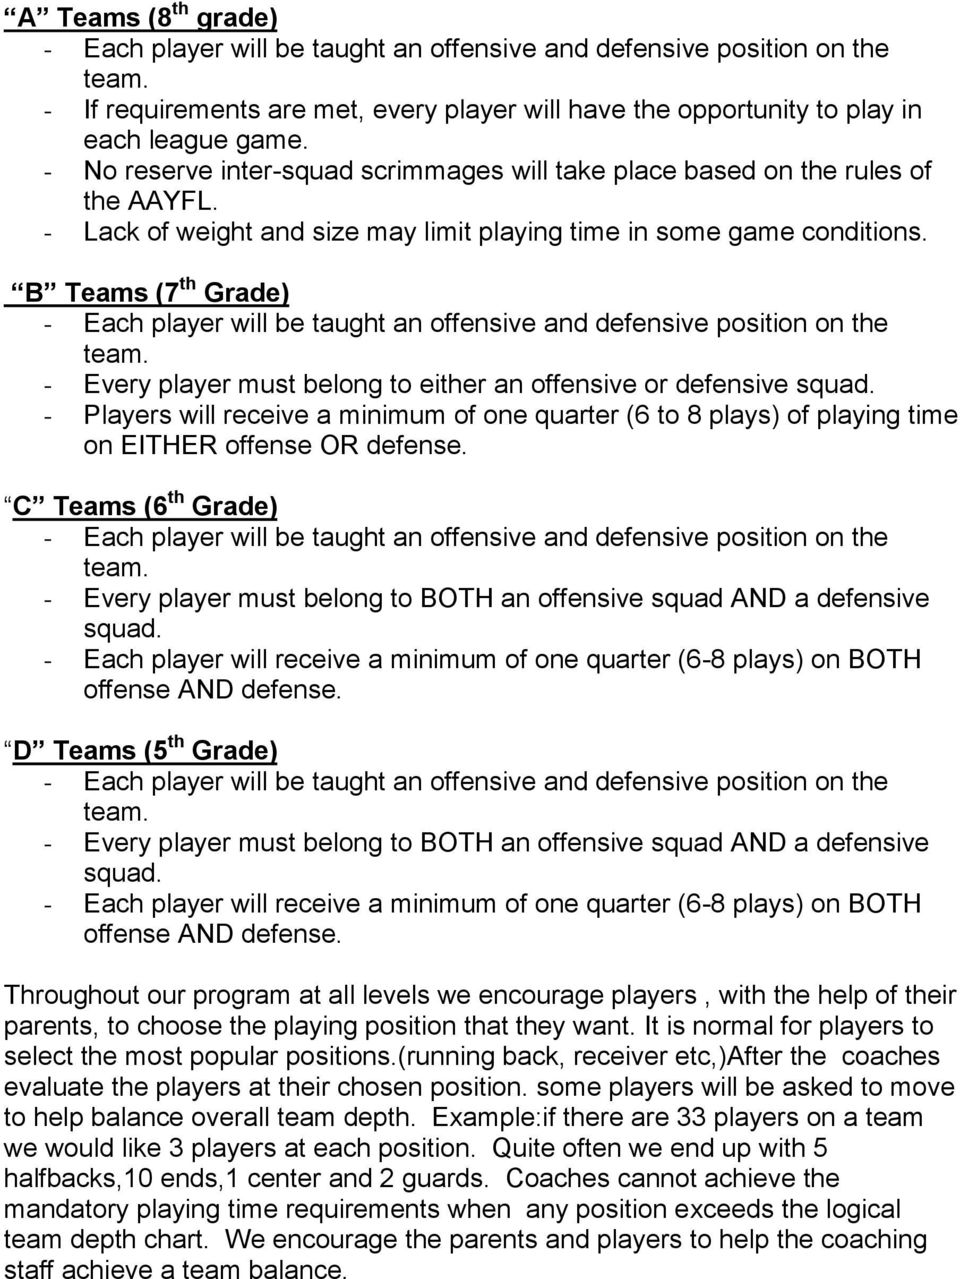 - Players will receive a minimum of one quarter (6 to 8 plays) of playing time on EITHER offense OR defense.